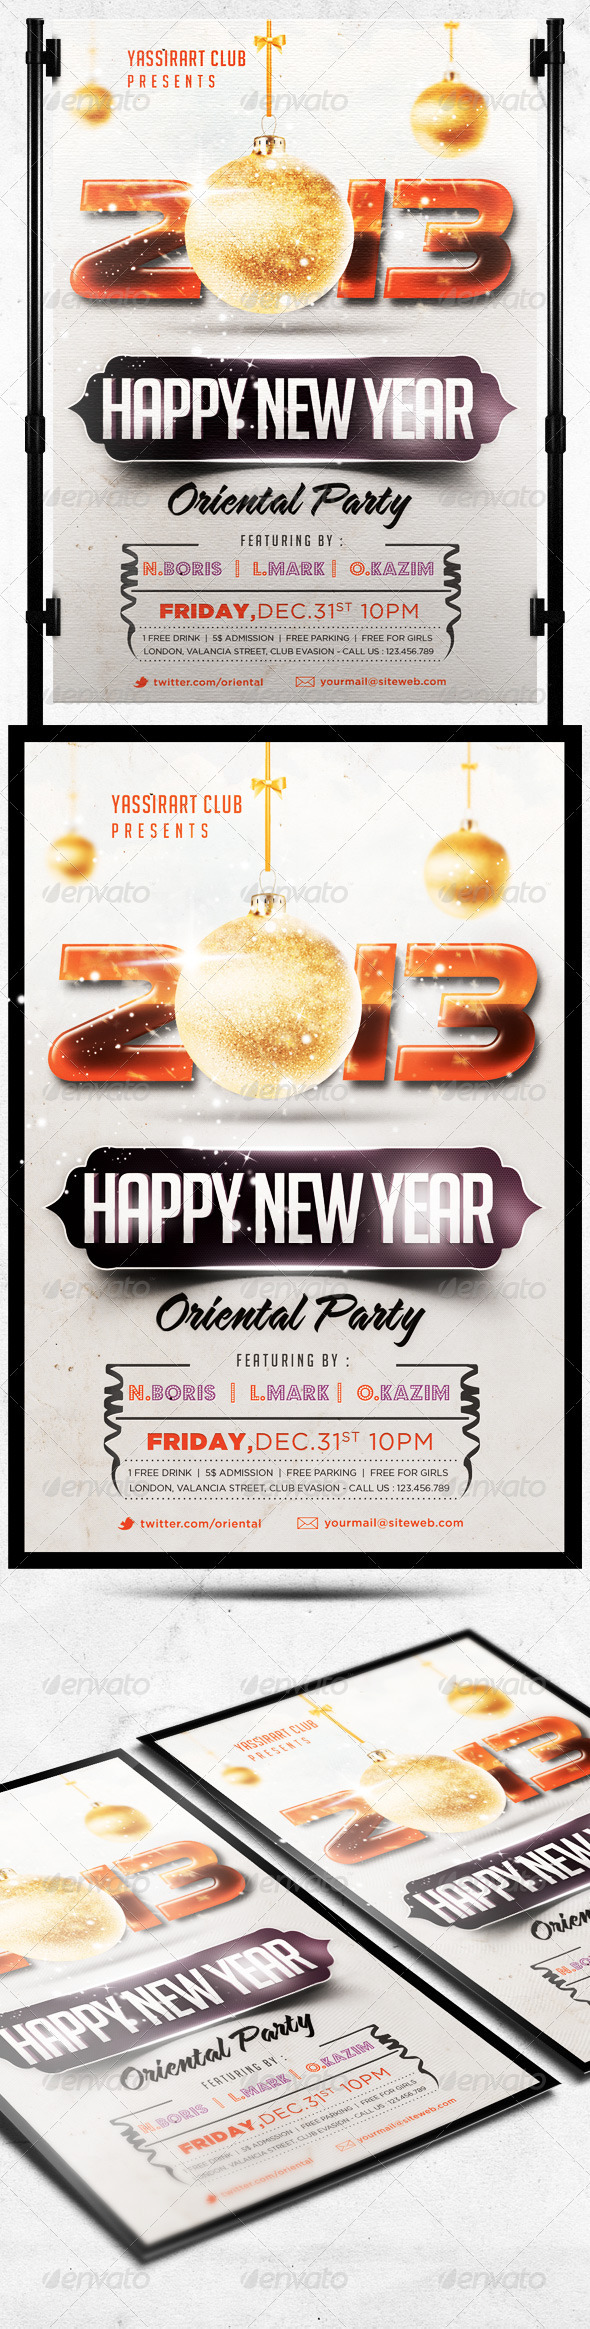 Happy New Year Flyer Party Template - Holidays Events